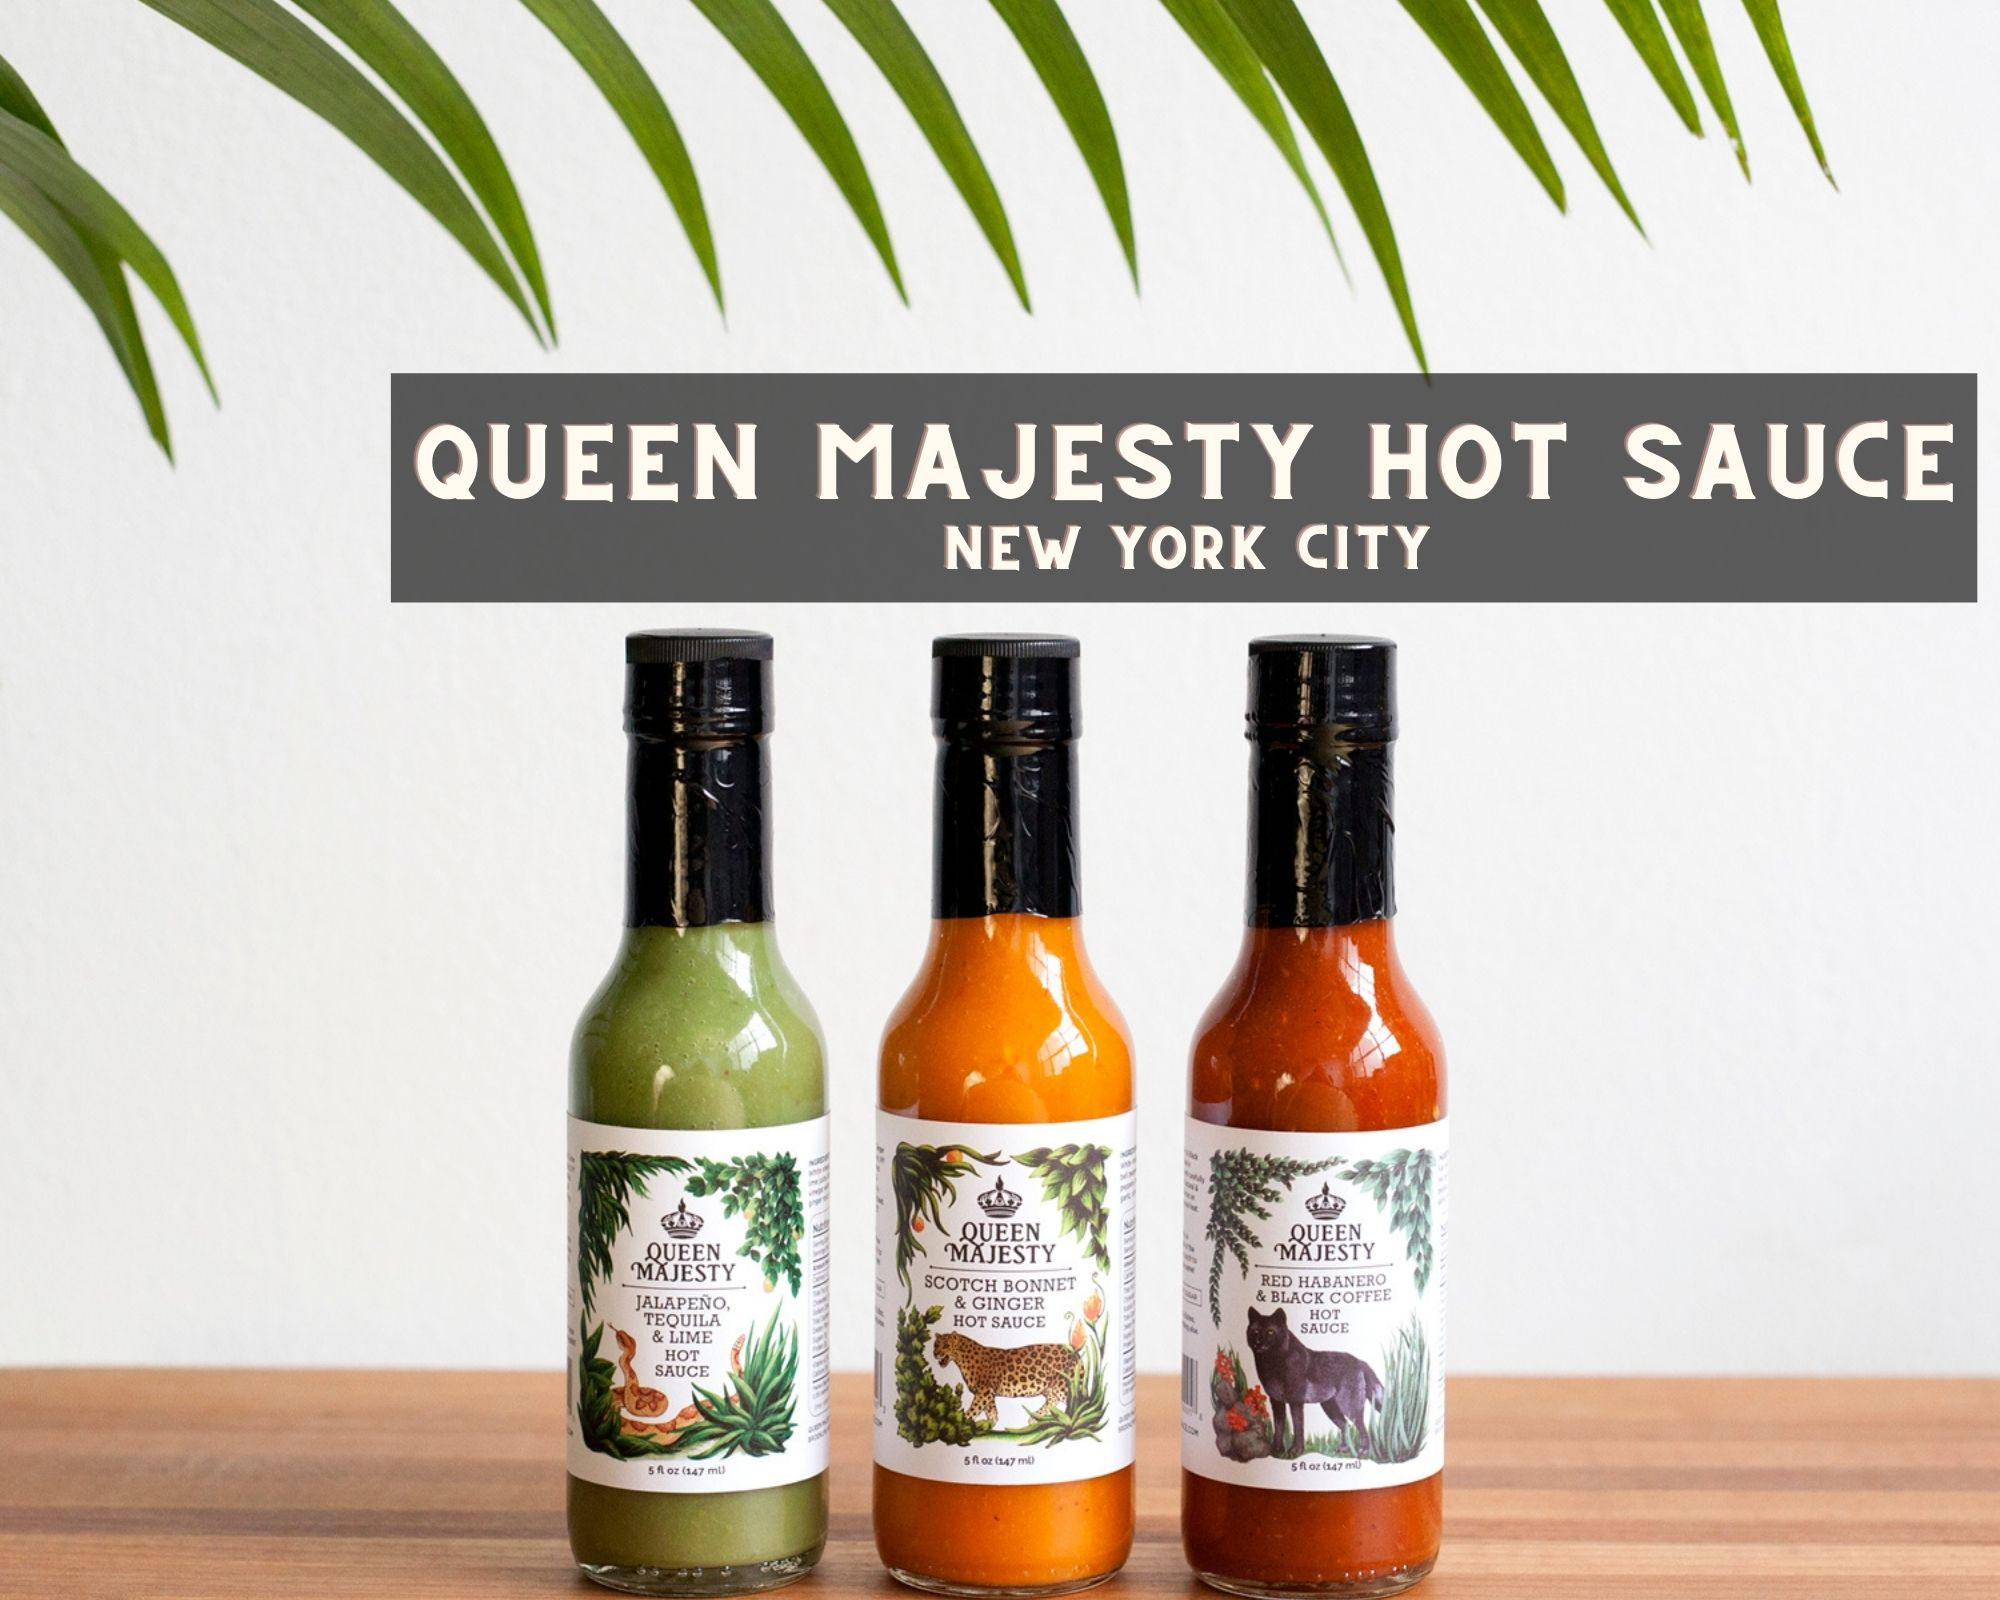 queen majesty hot sauce story thumbnail